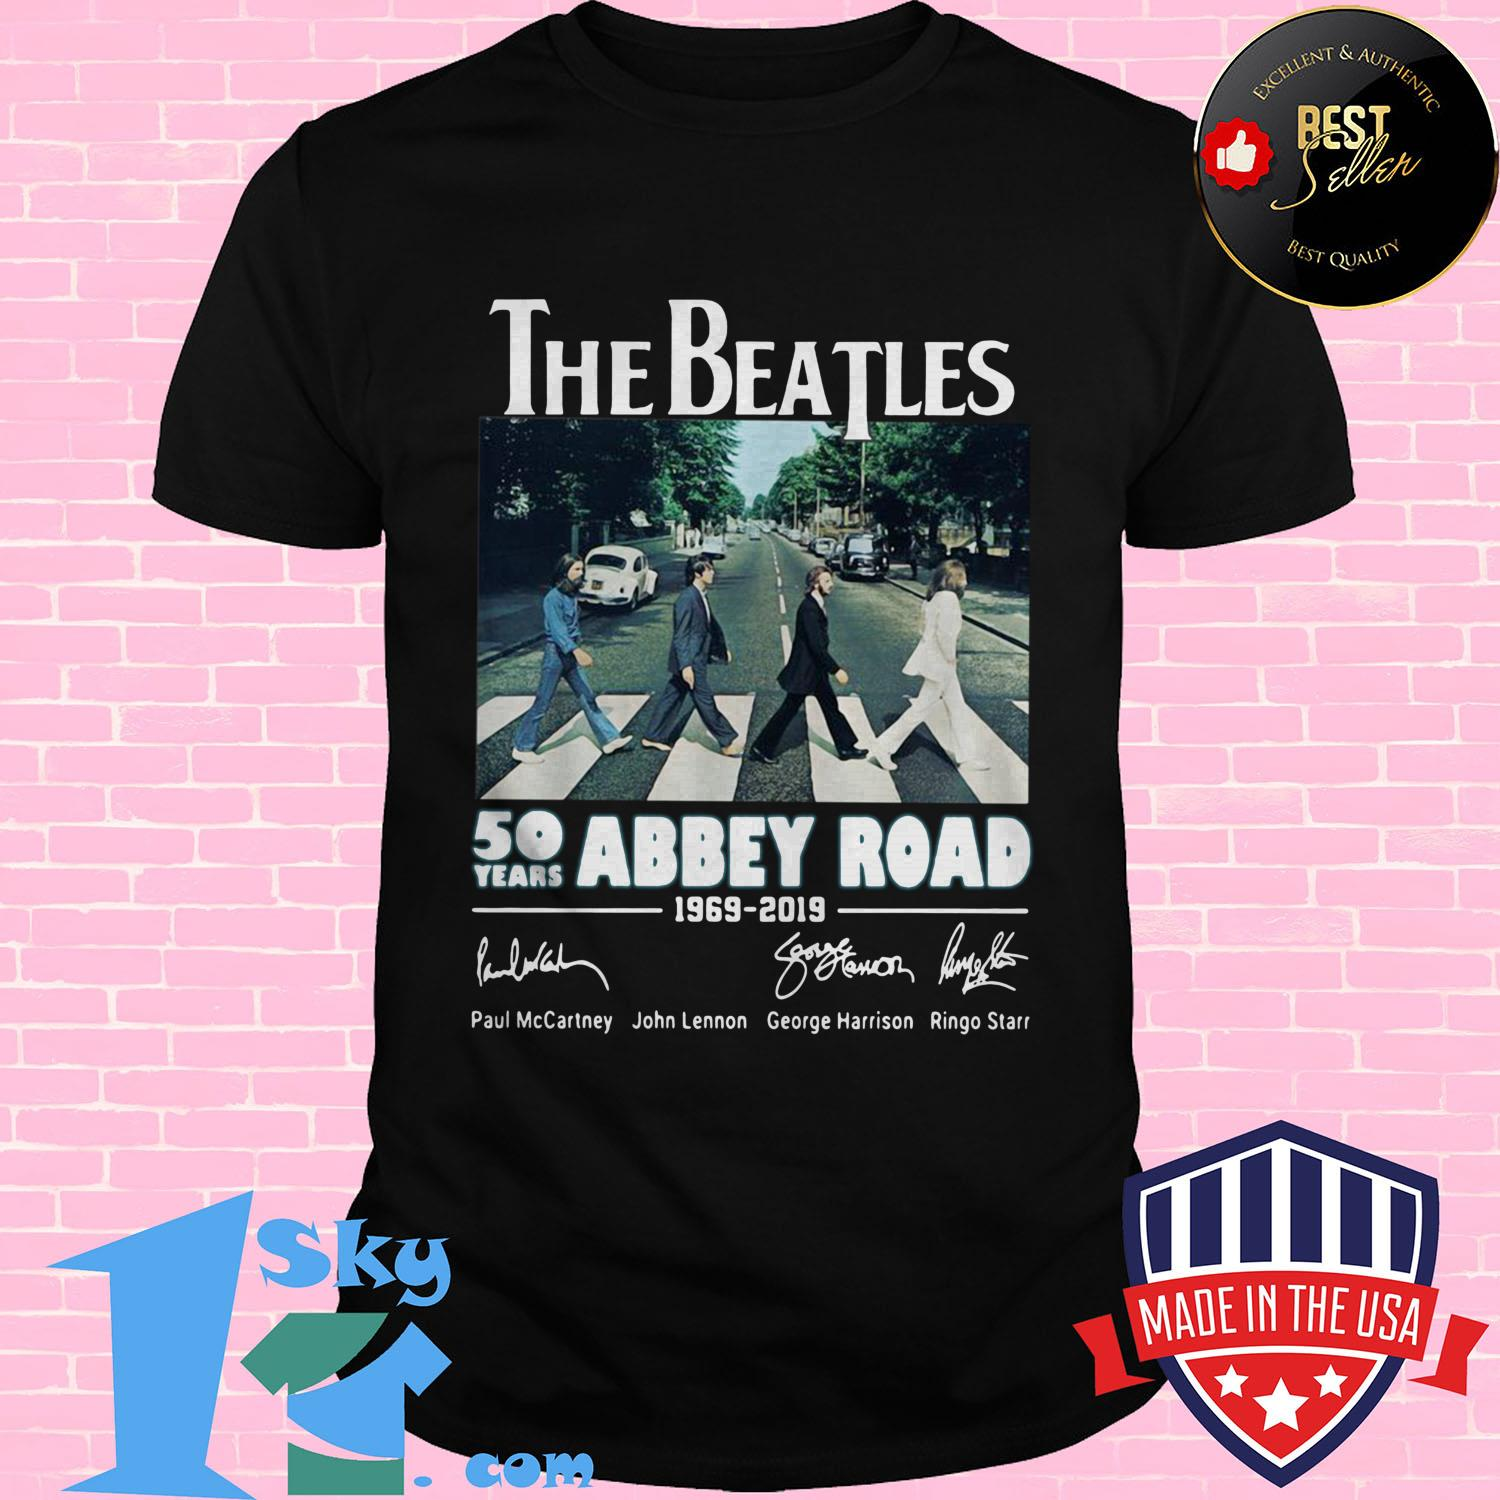 the beatles 50 years abbey road 1969 2019 signature ladies tee - The Beatles 50 years Abbey Road 1969–2019 signature shirt